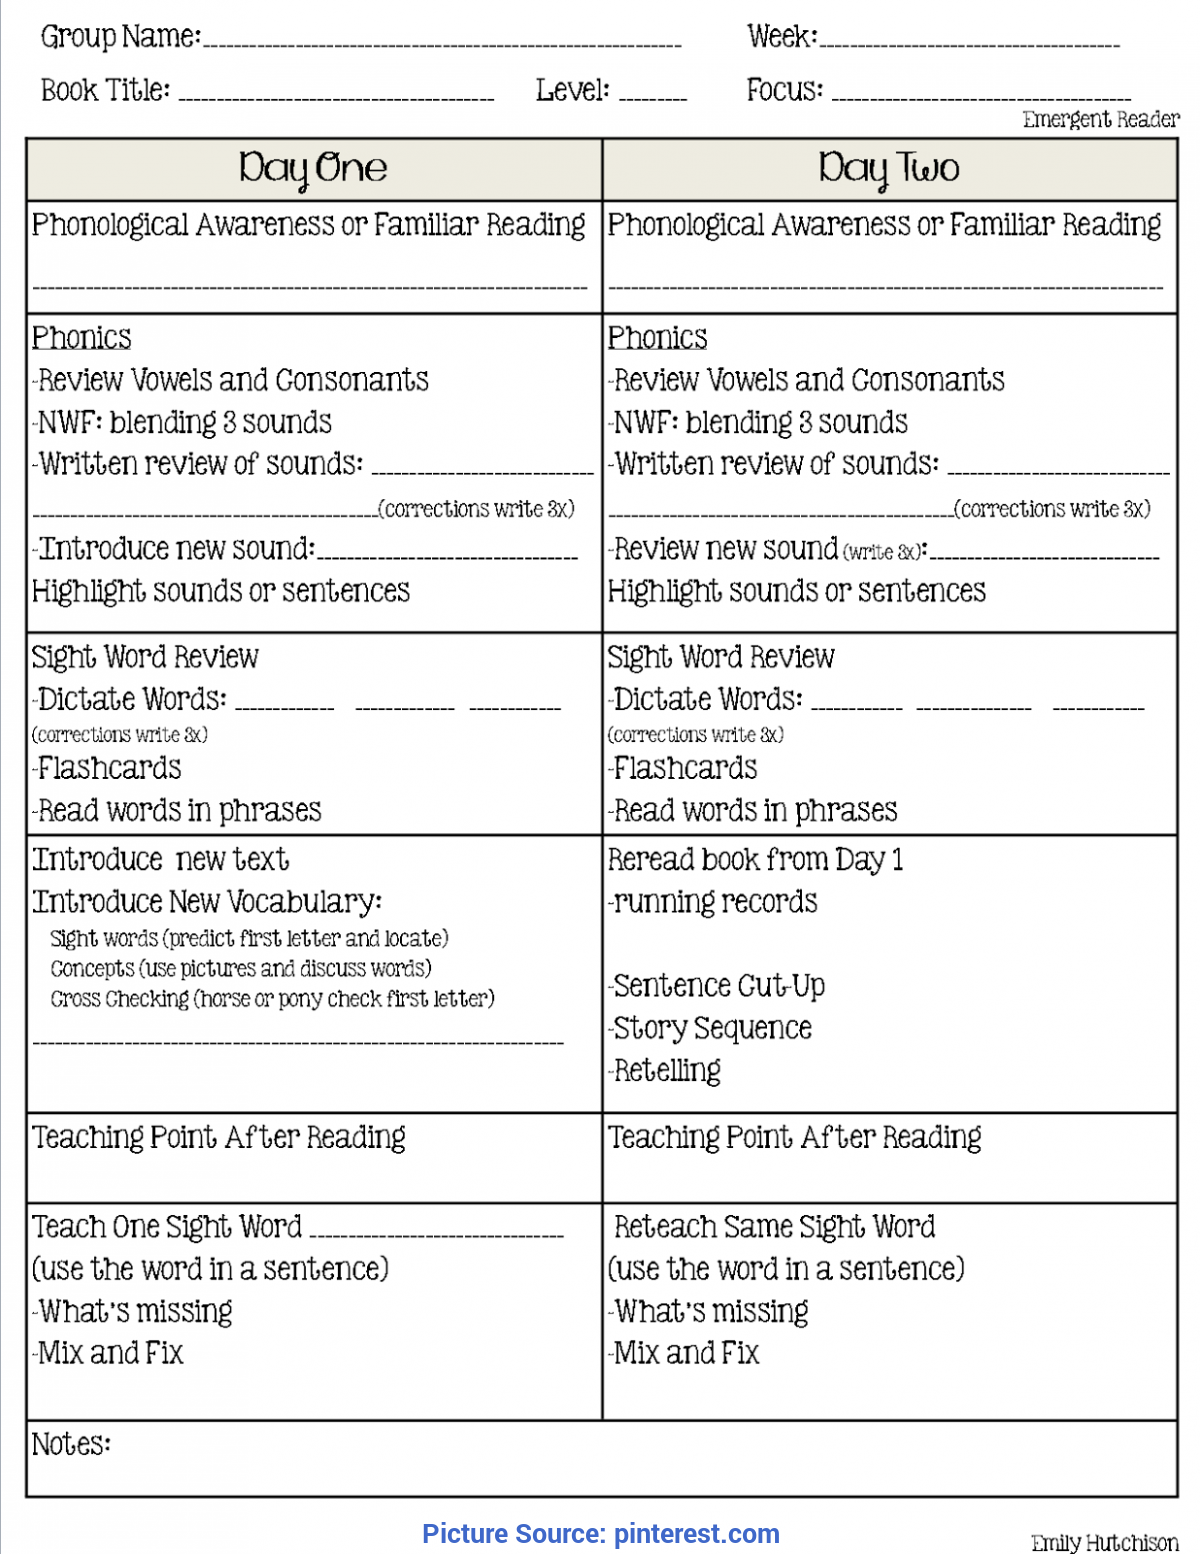 Special Reading Recovery Lesson Plan Guided Reading Format: A Second Look (Curious Firsties) | Guide